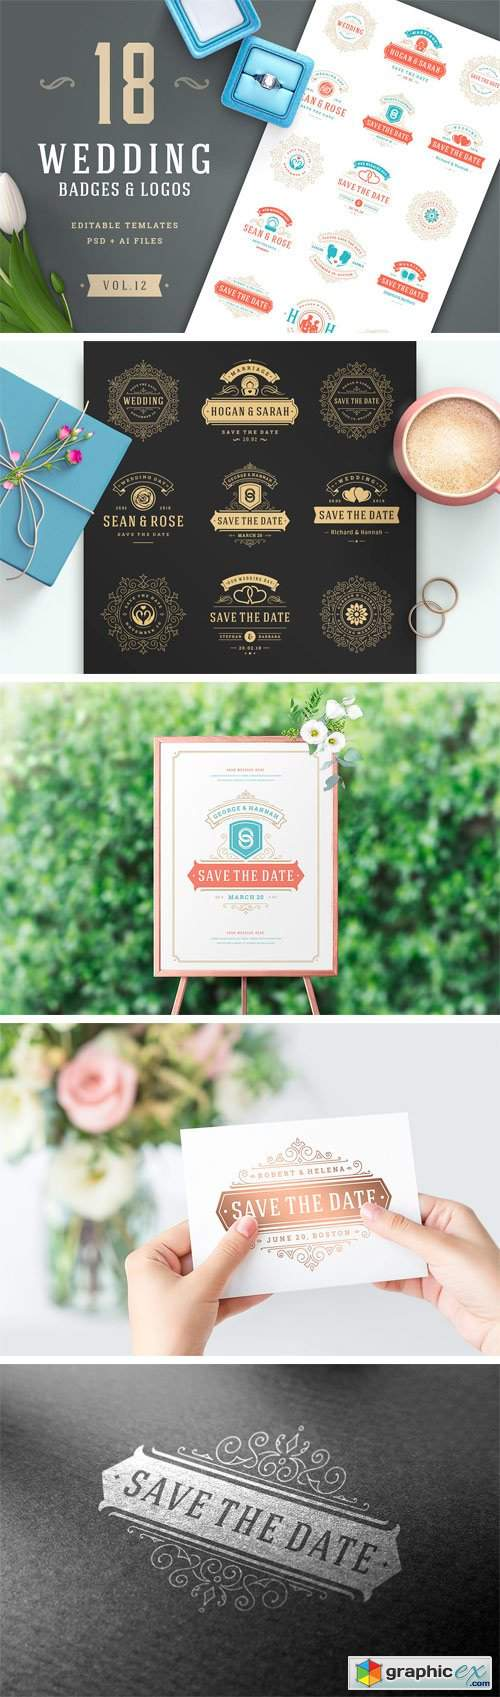 18 Wedding Logos and Badges 2202122